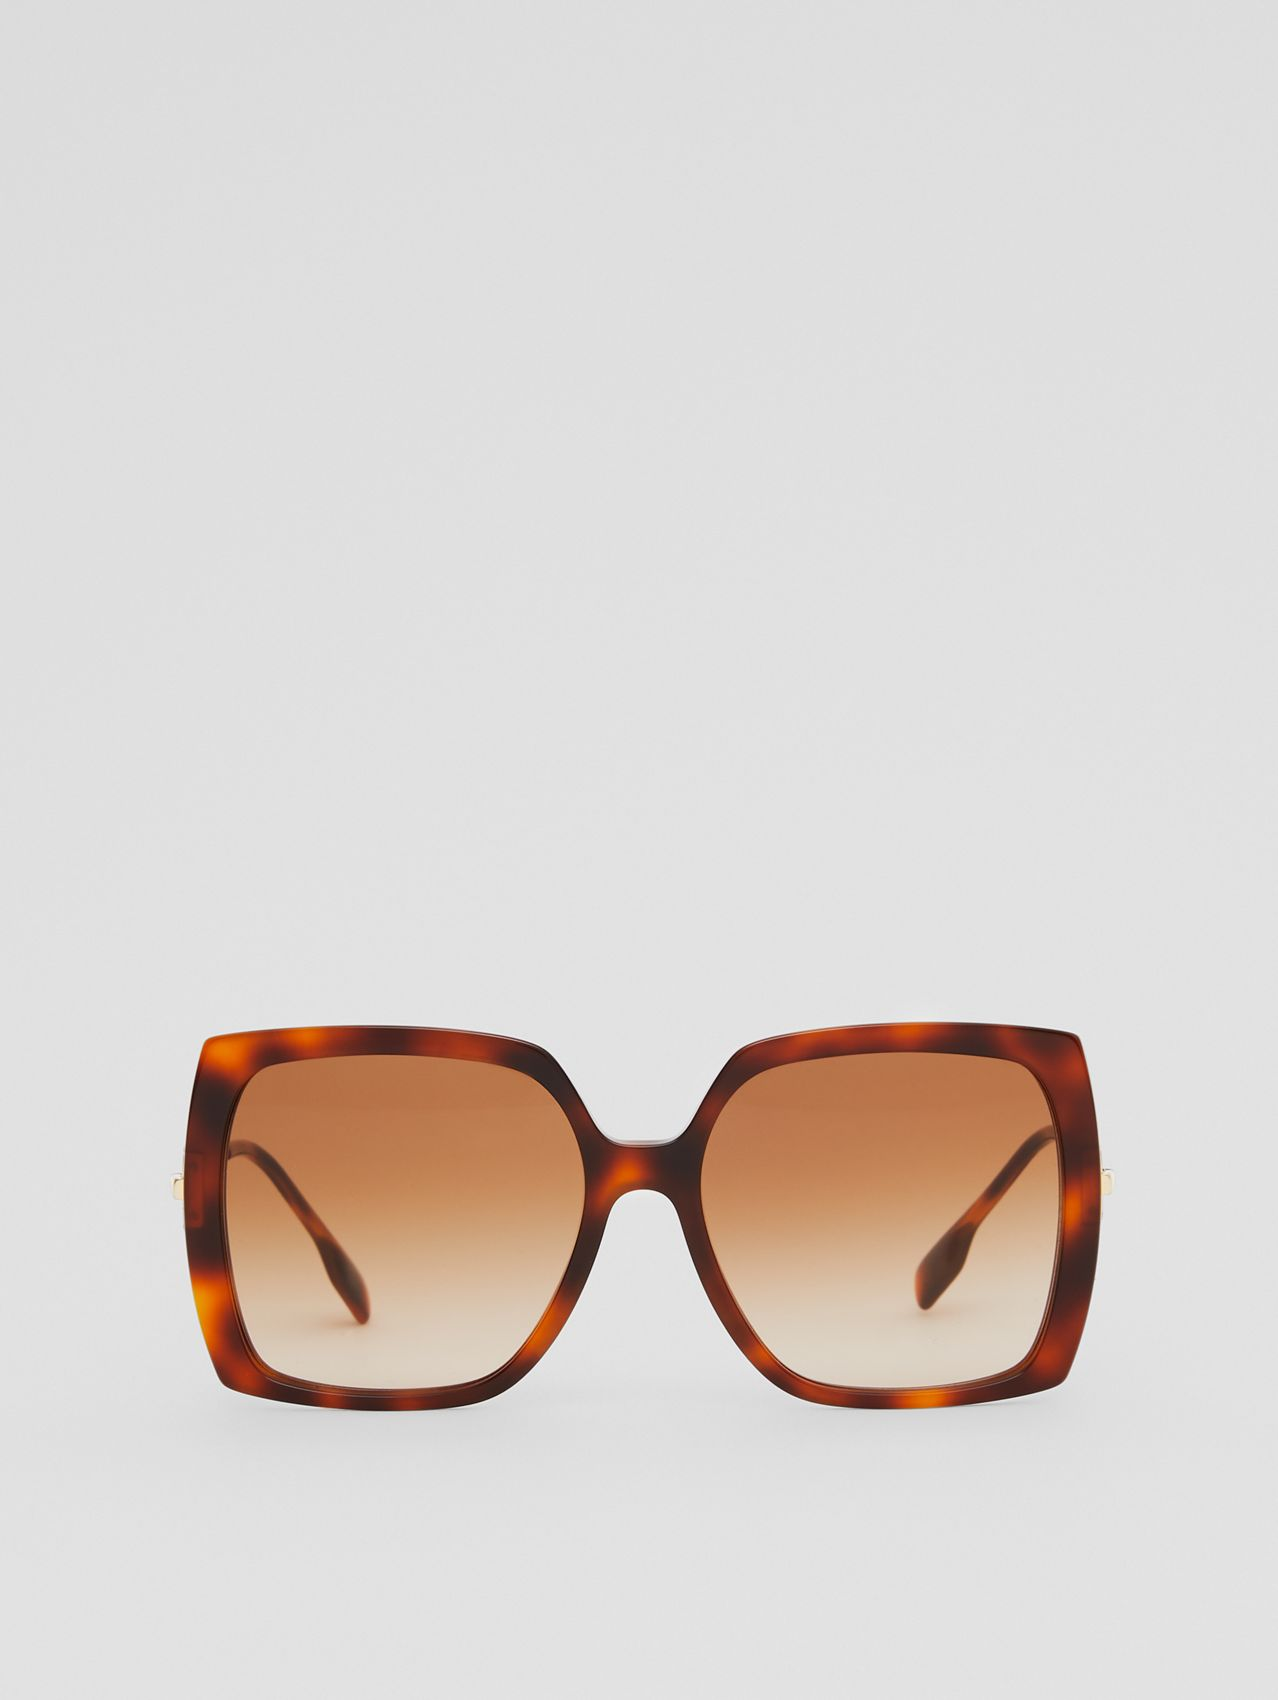 Chain-link Detail Oversized Square Frame Sunglasses in Dark Tortoiseshell Amber